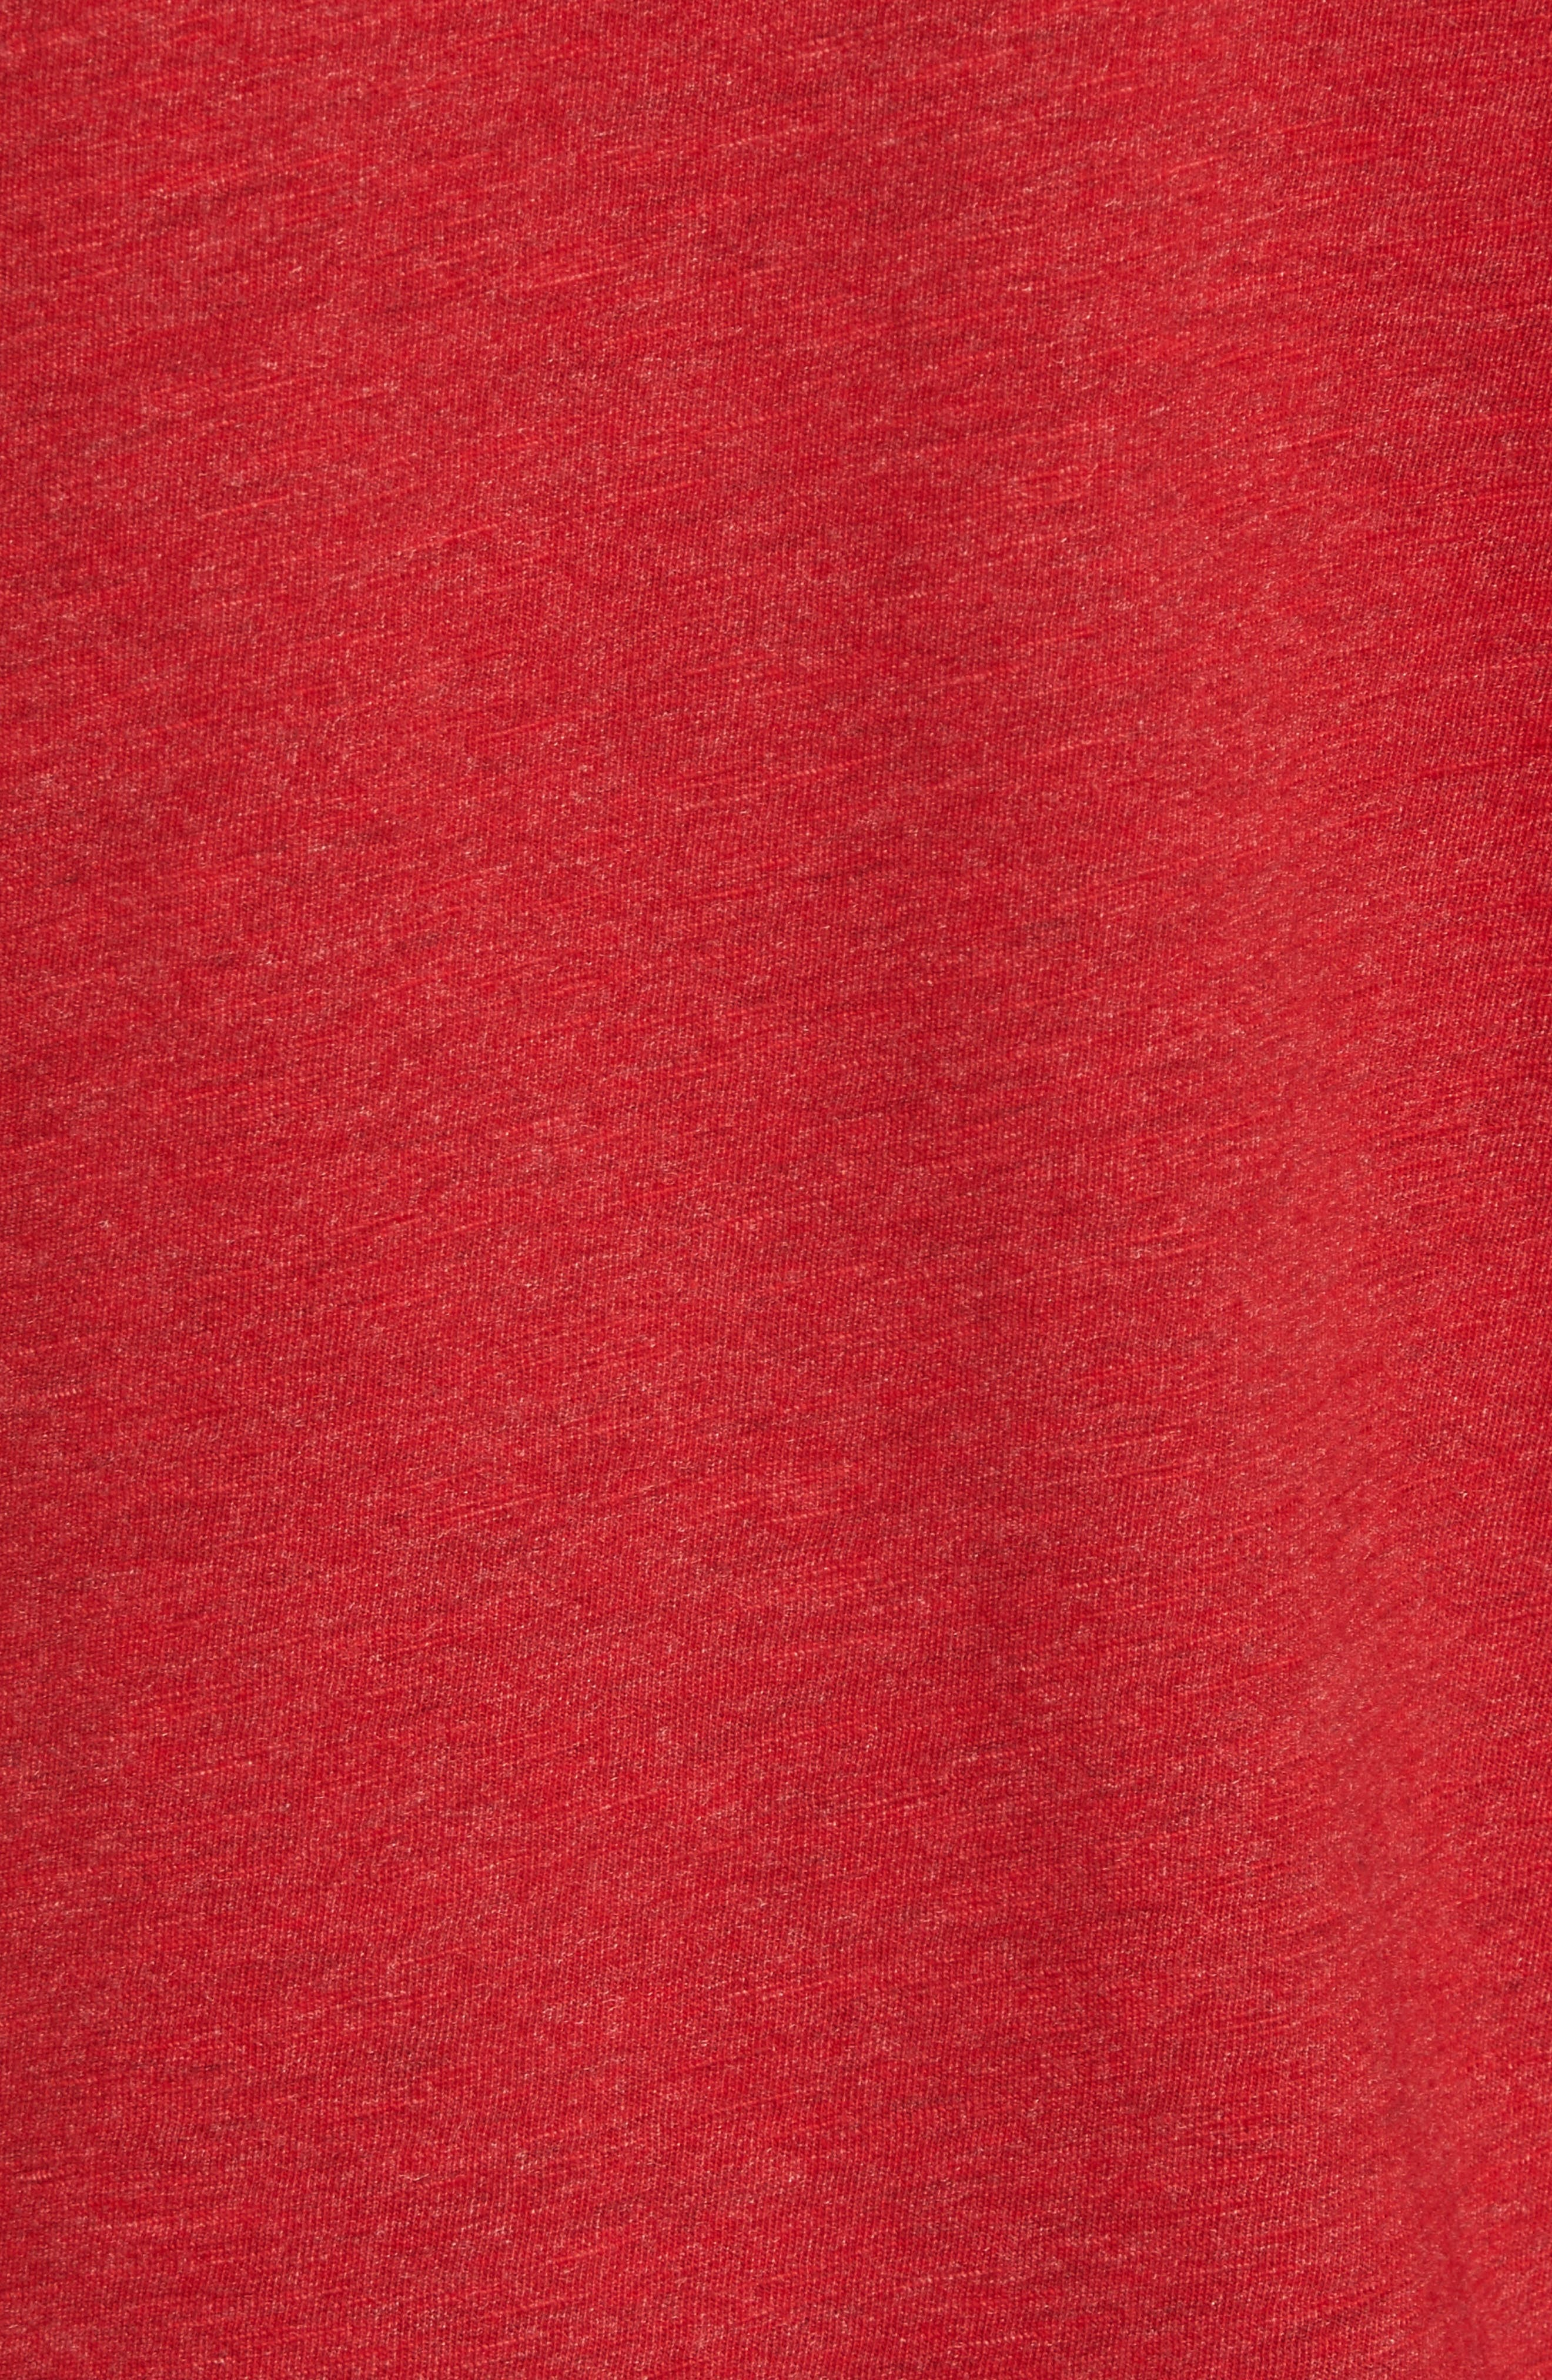 V-Neck T-Shirt,                             Alternate thumbnail 5, color,                             Coccinelle Dyed